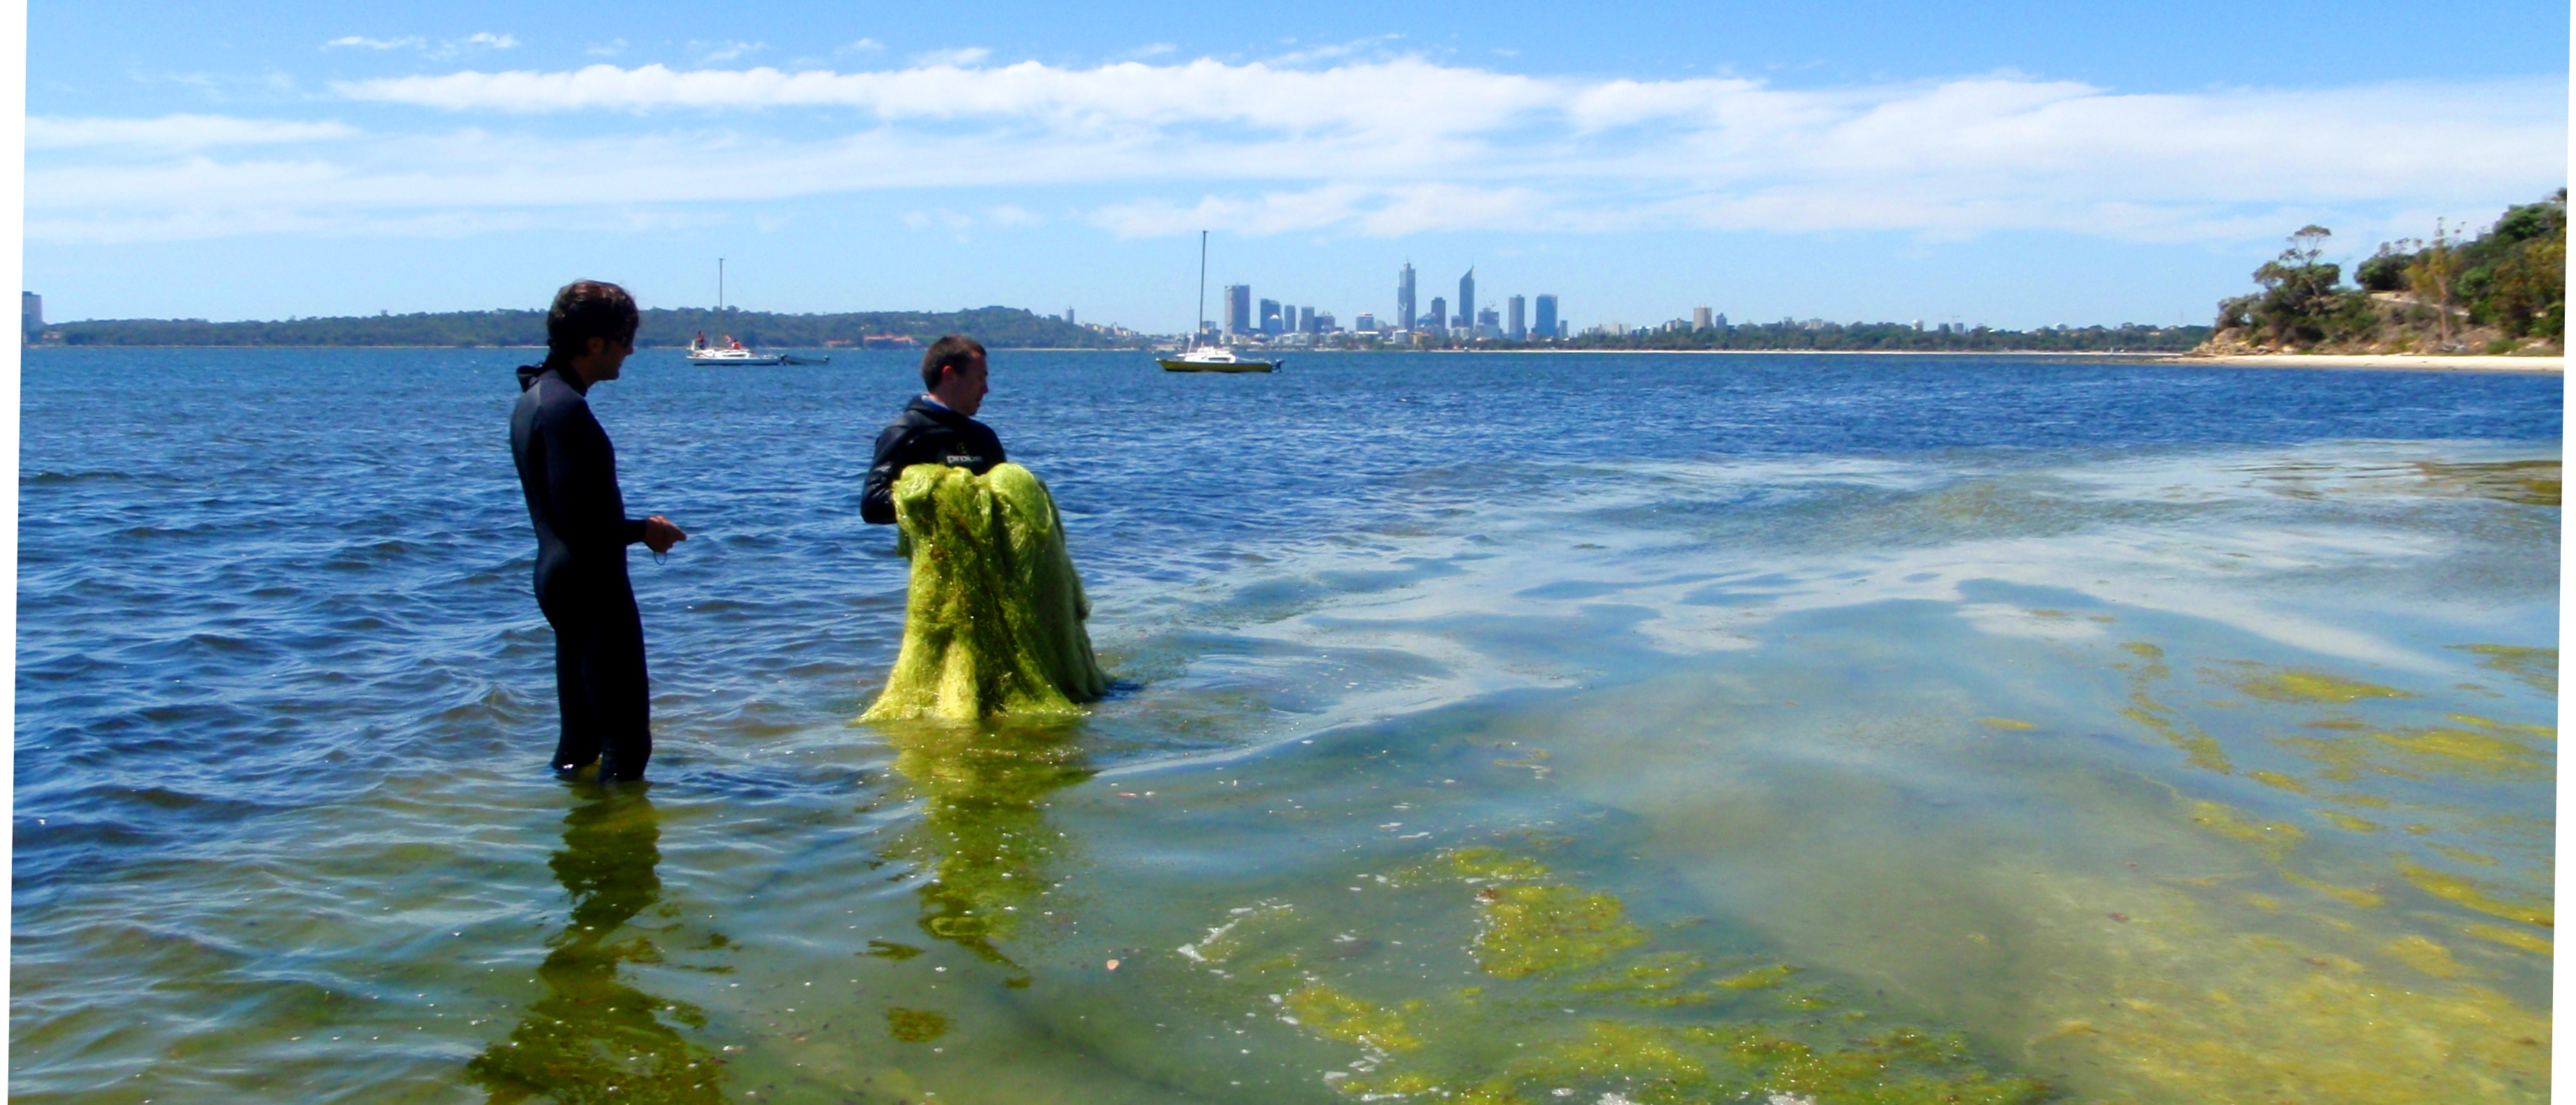 Macoalgae in Waylen Bay, Swan River 2010